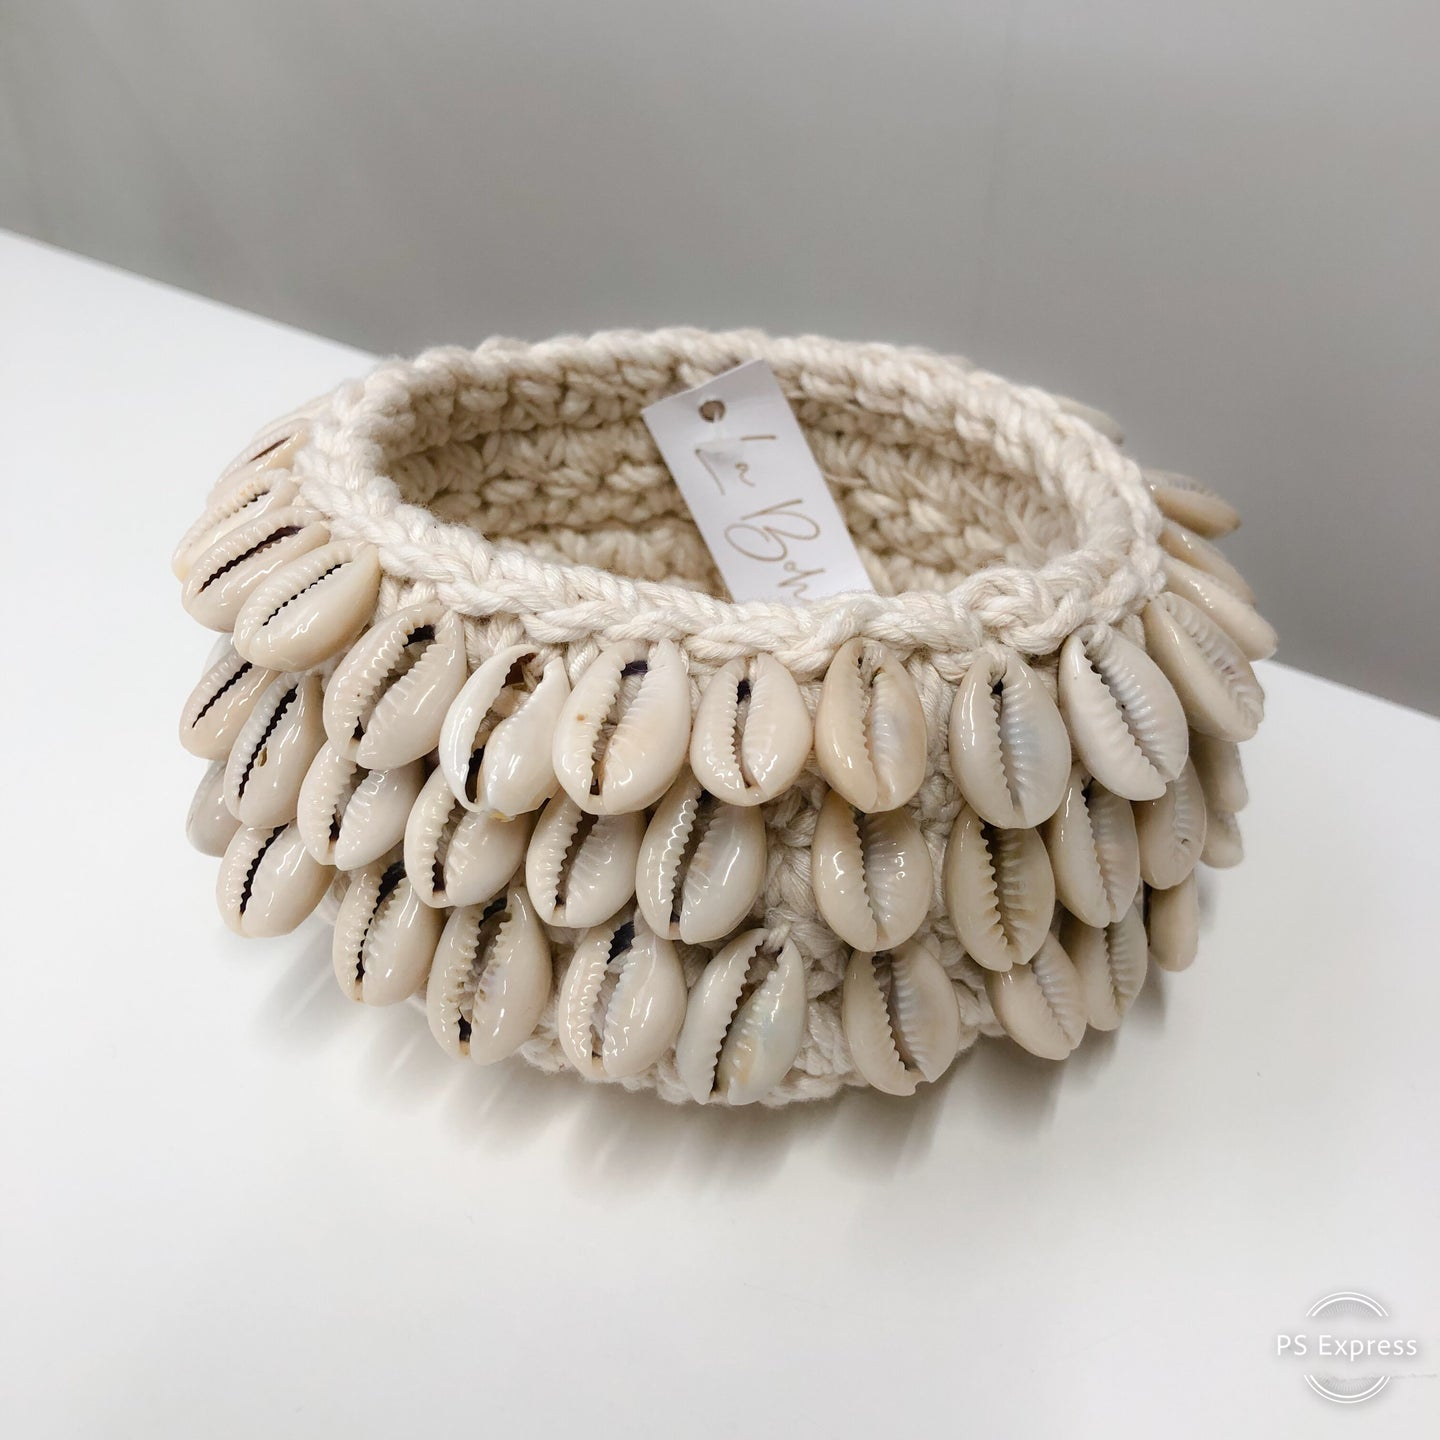 Macrame Candle Holder with 3 Rows of Cowrie Shells